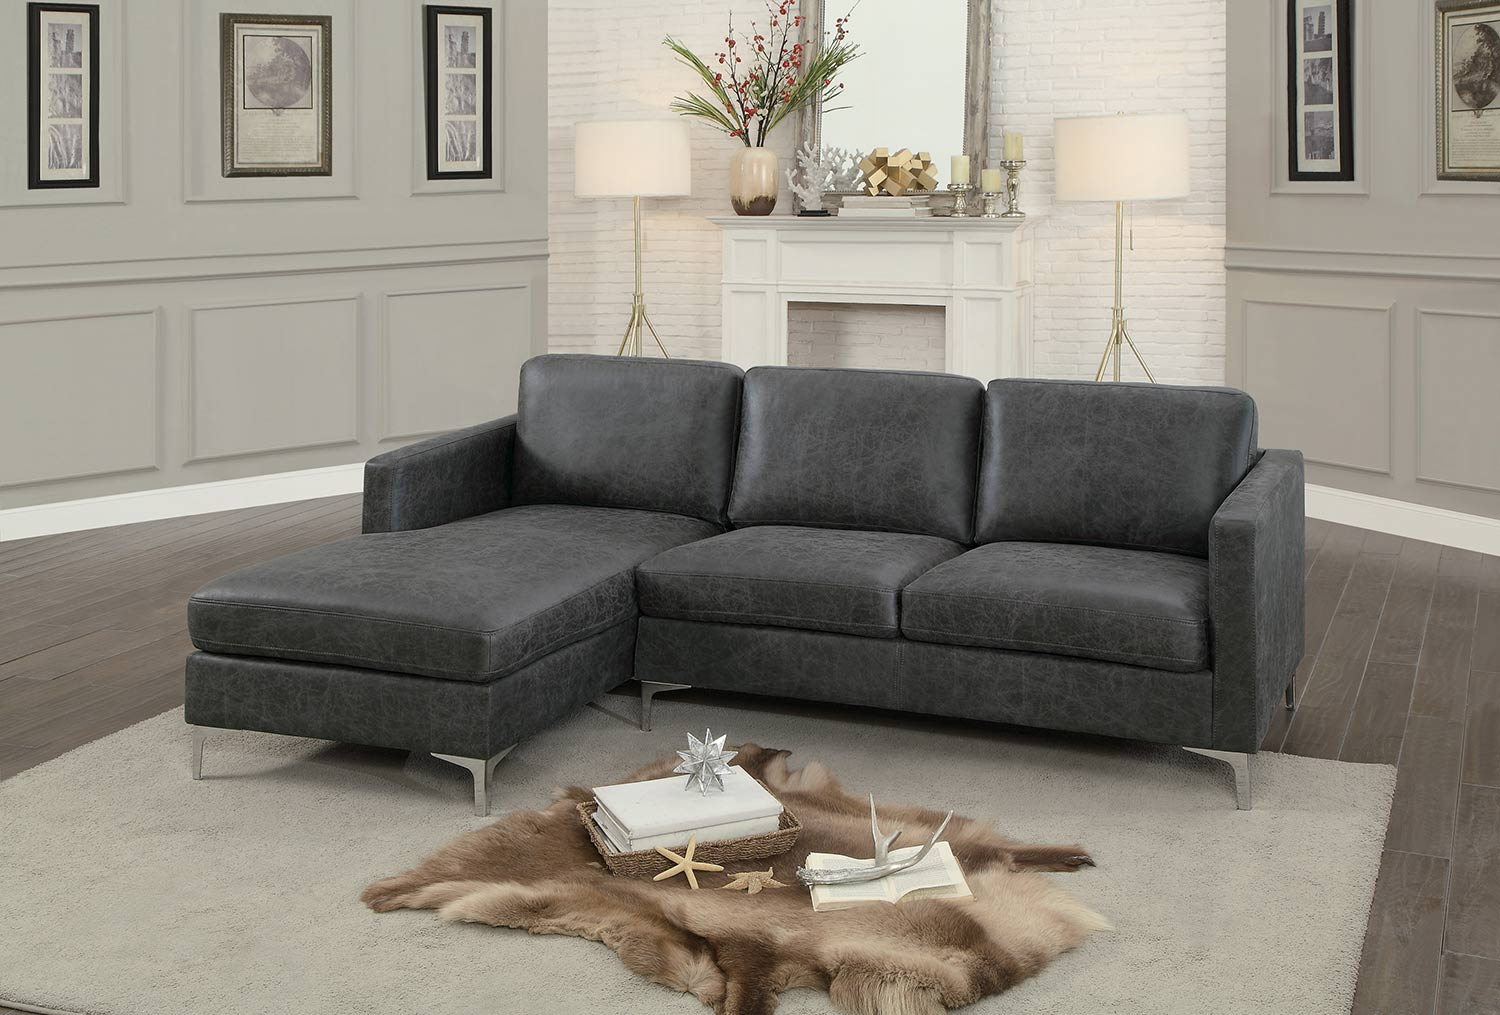 Homelegance Breaux Sectional Sofa - Gray Fabric